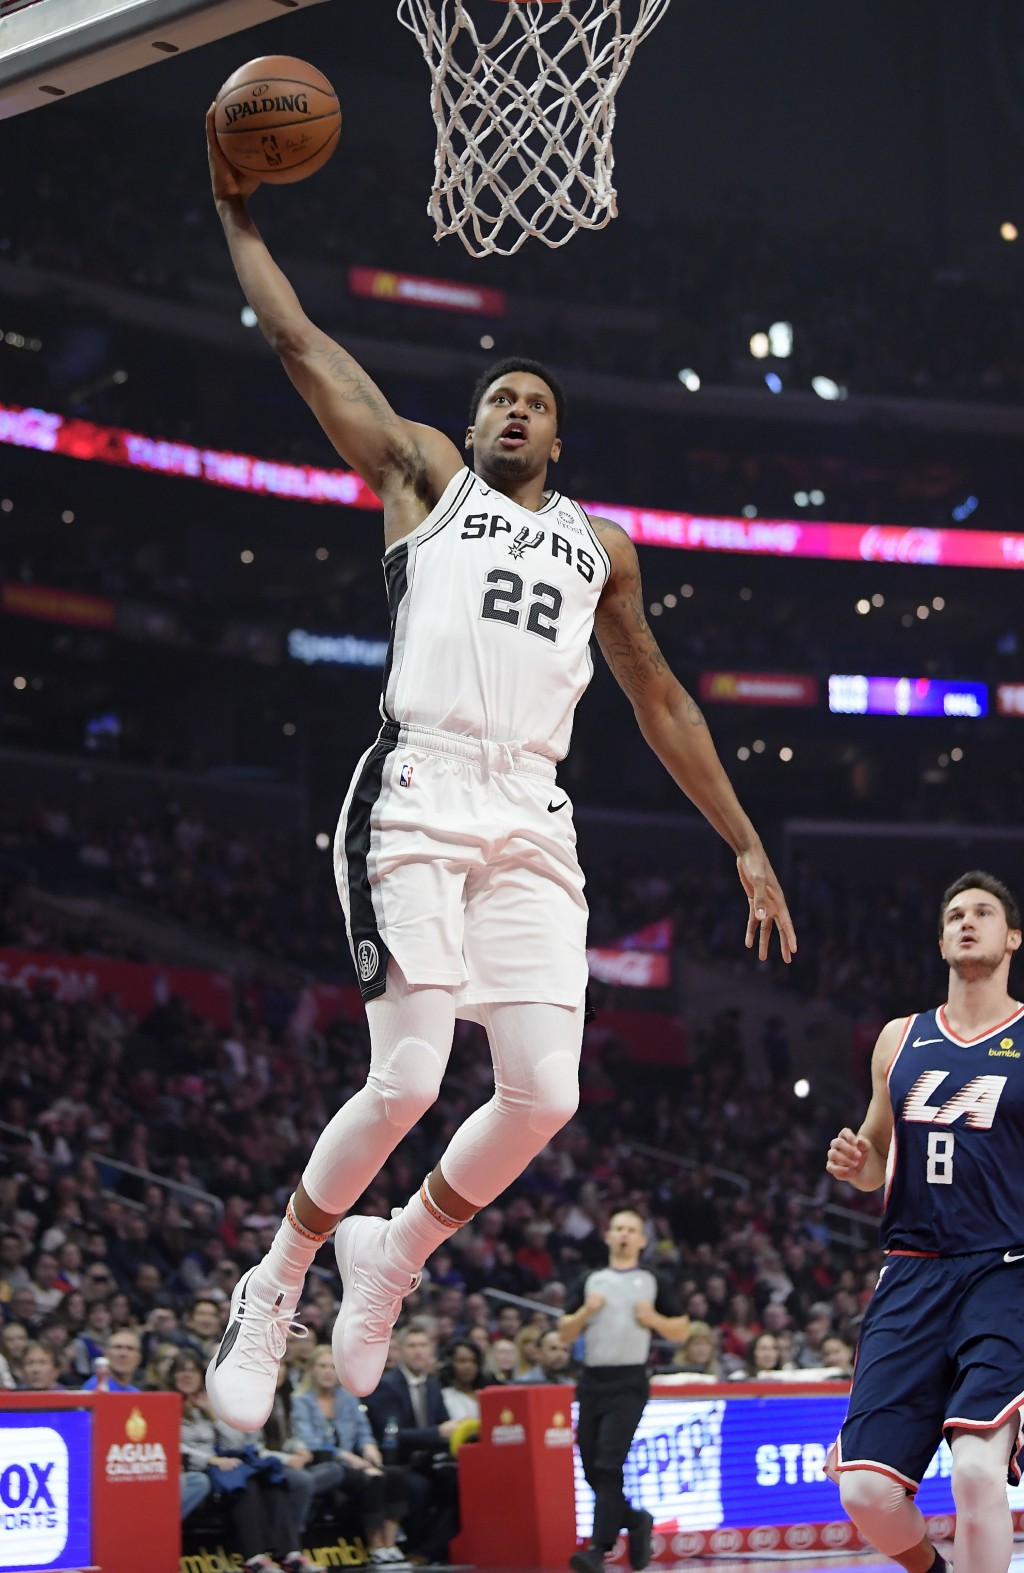 San Antonio Spurs forward Rudy Gay goes up for a dunk as Los Angeles Clippers forward Danilo Gallinari watches during the first half of an NBA basketb...